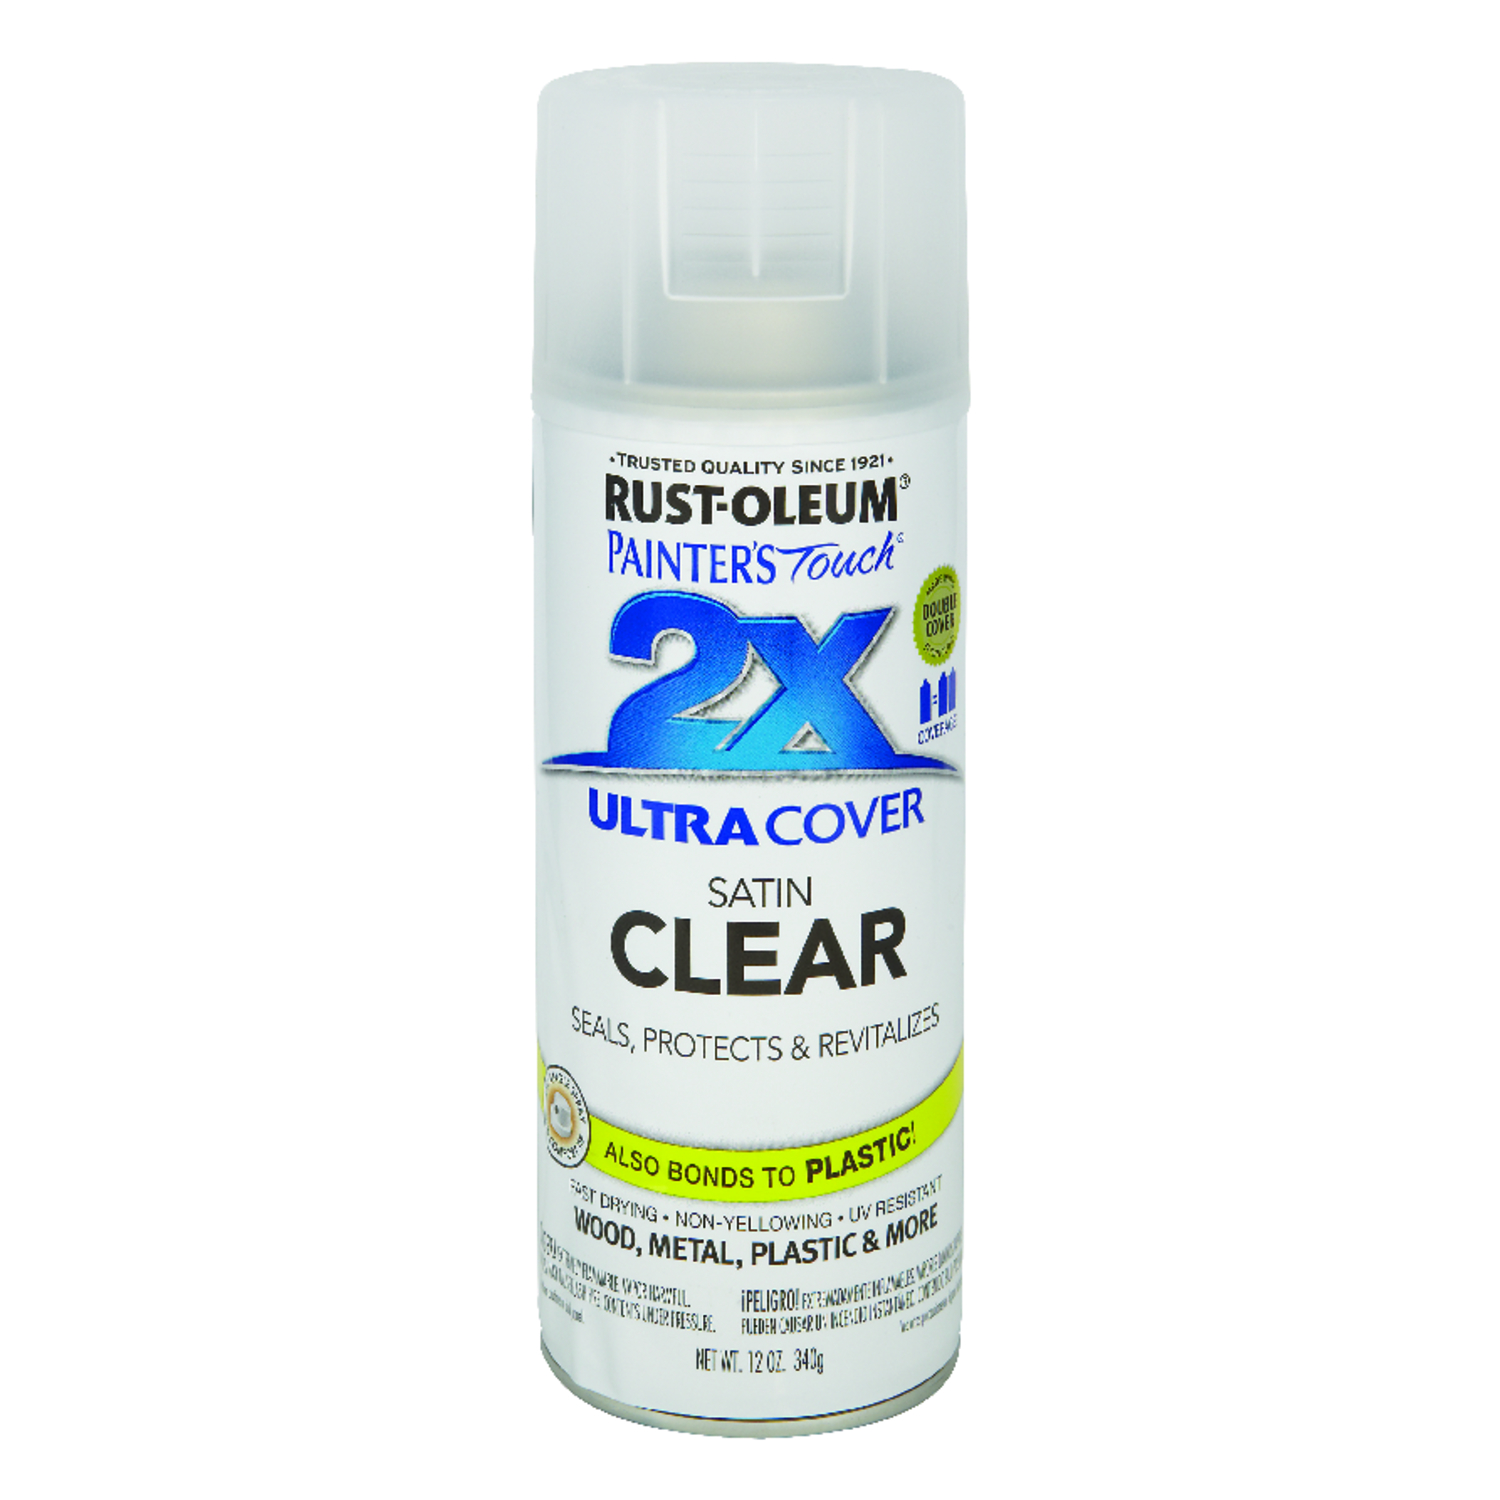 Rust-Oleum  Painter's Touch Ultra Cover  Satin  Clear  12 oz. Spray Paint